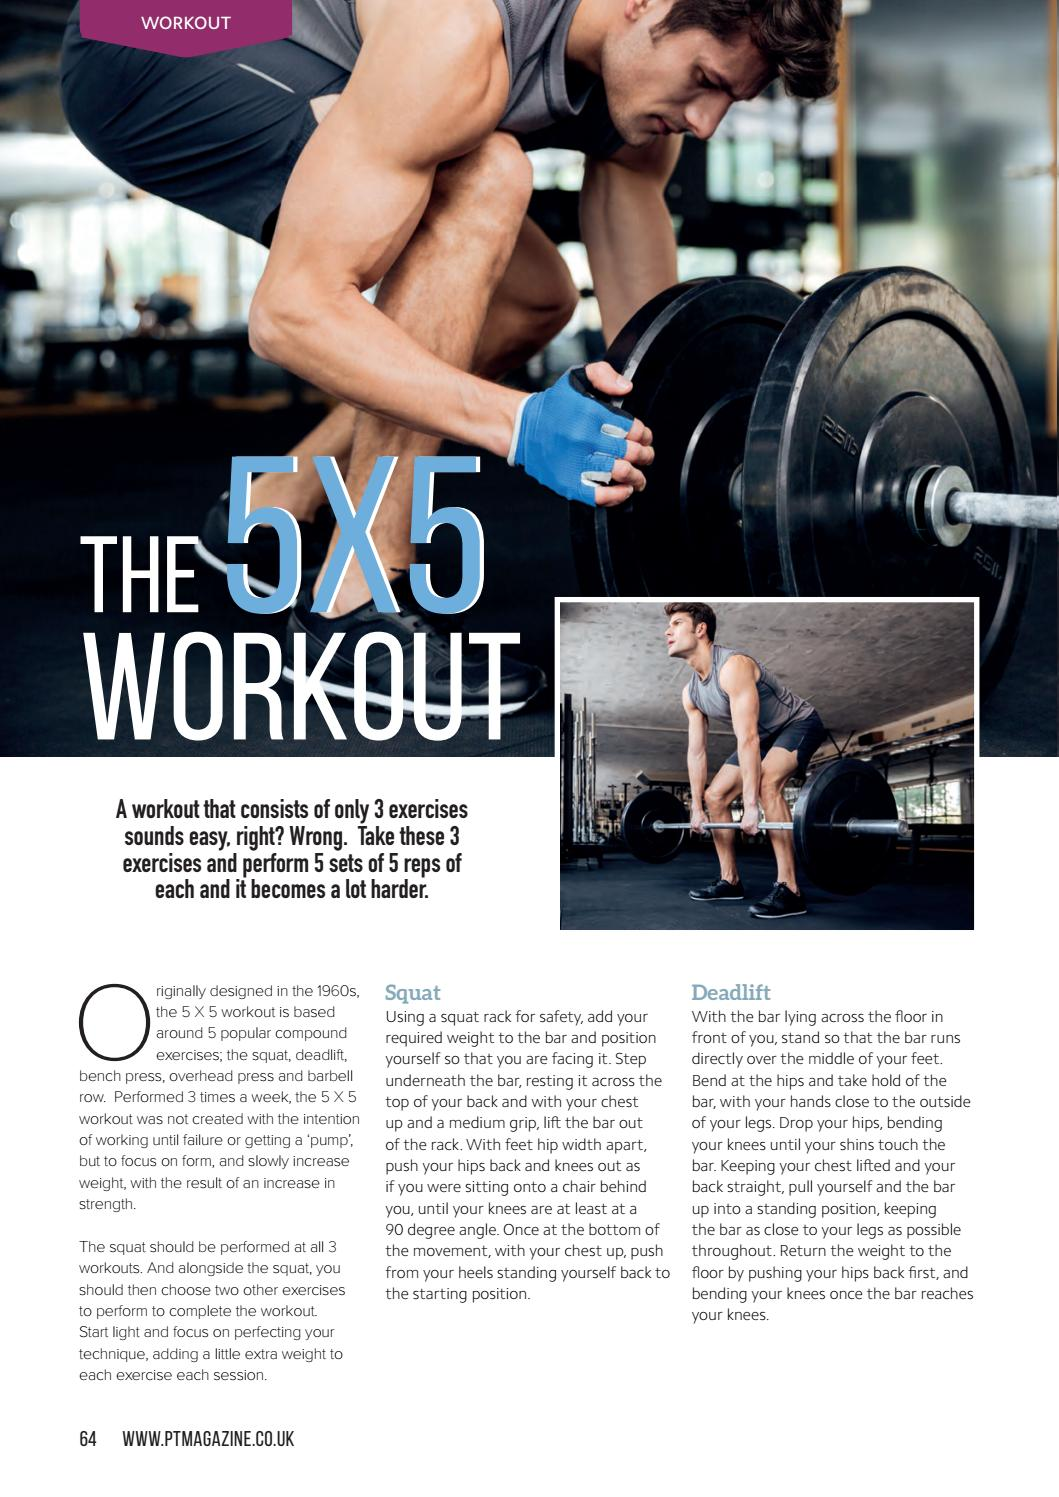 Personal Trainer Magazine Sept 2016 by PT Live - issuu